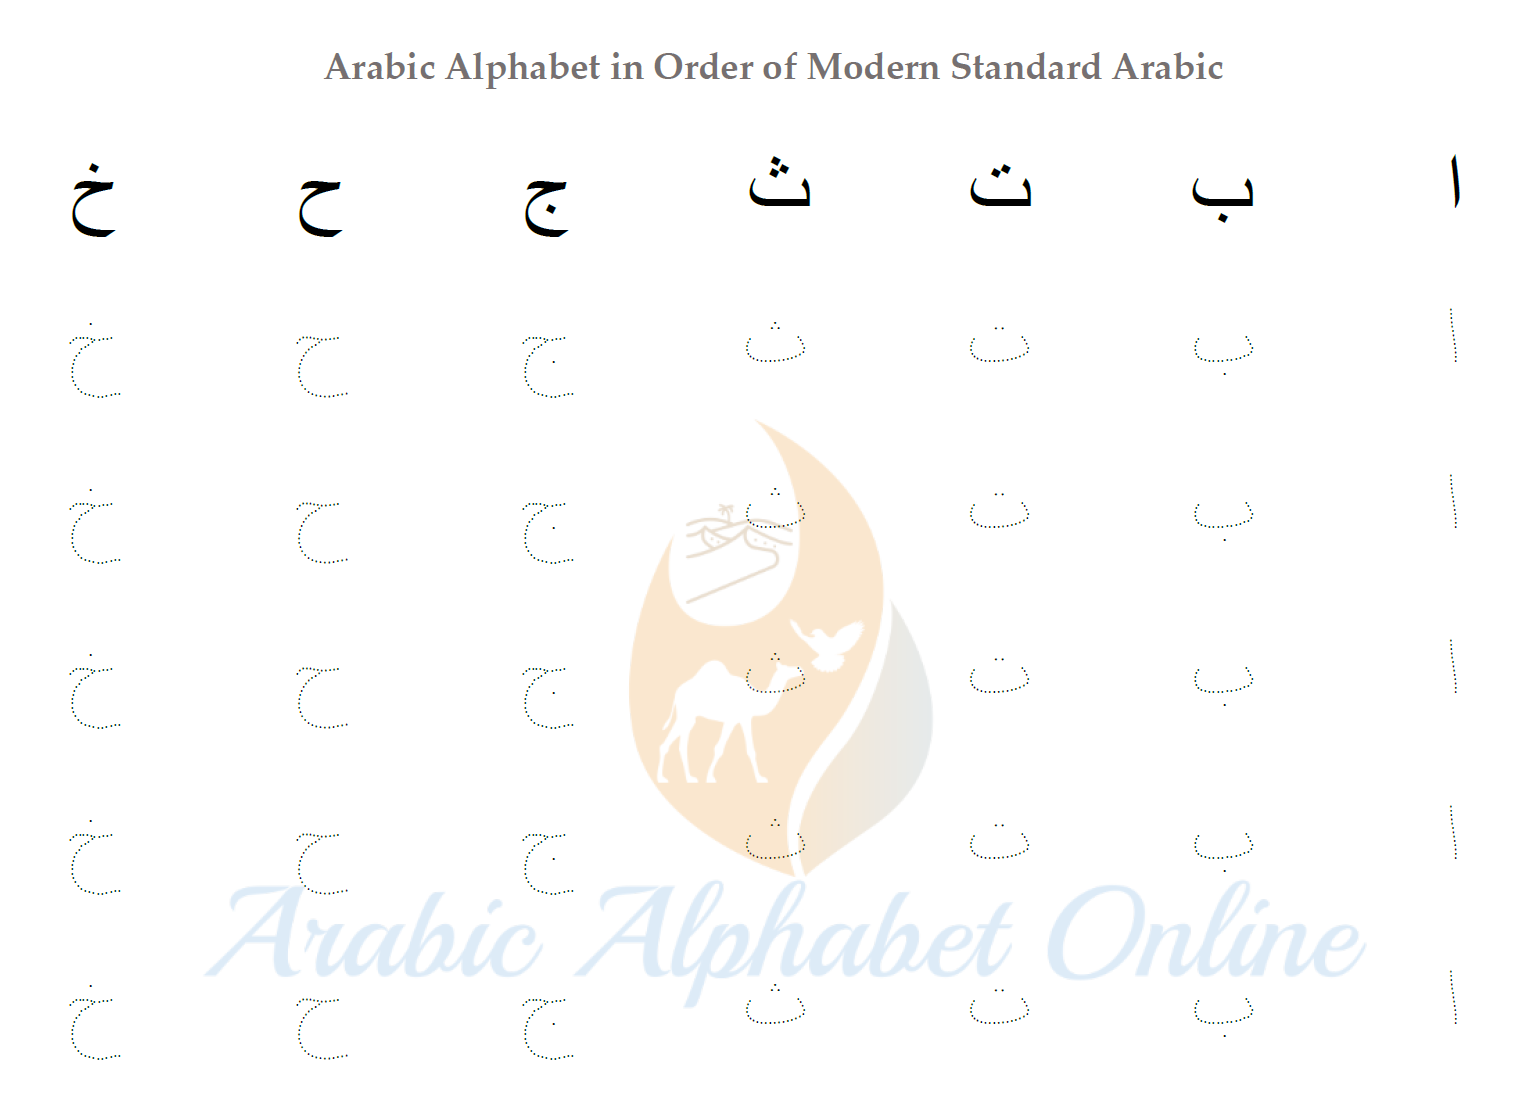 Arabic Alphabet Tracing Worksheets | Arabic Alphabet Online ...